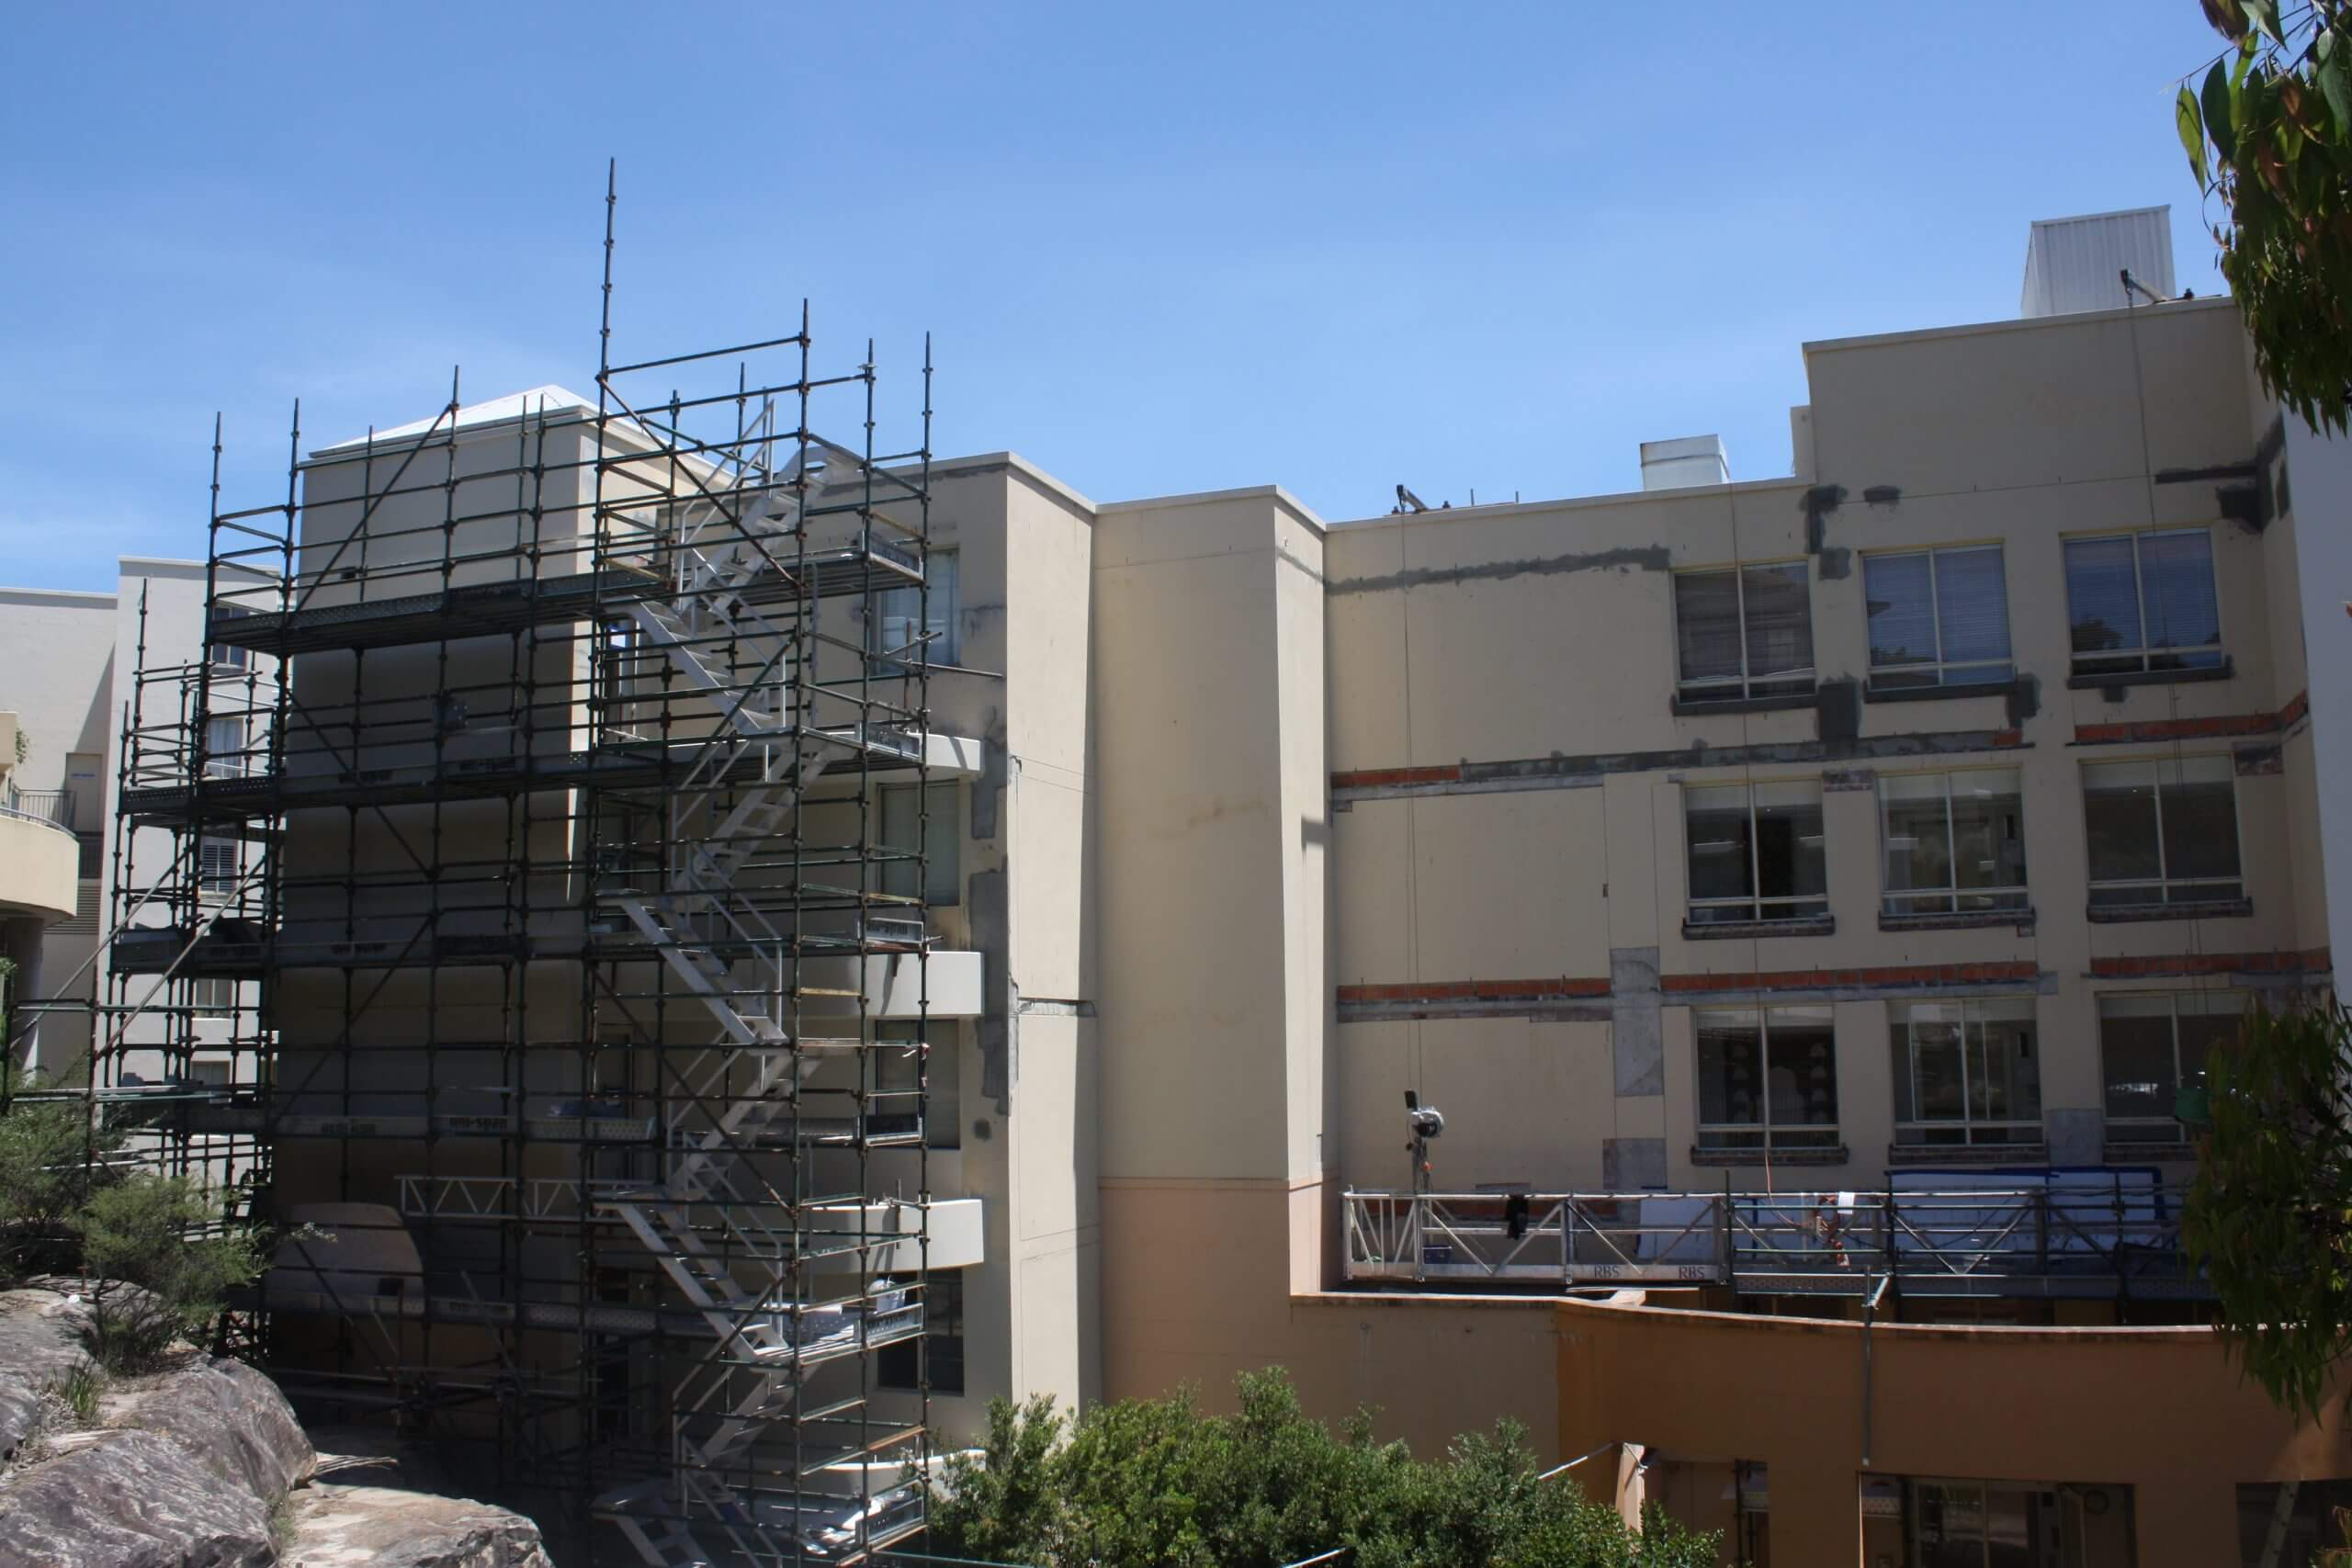 Scaffolding Around The Building For Repair Work - Façade Repair - Remedial Building Services